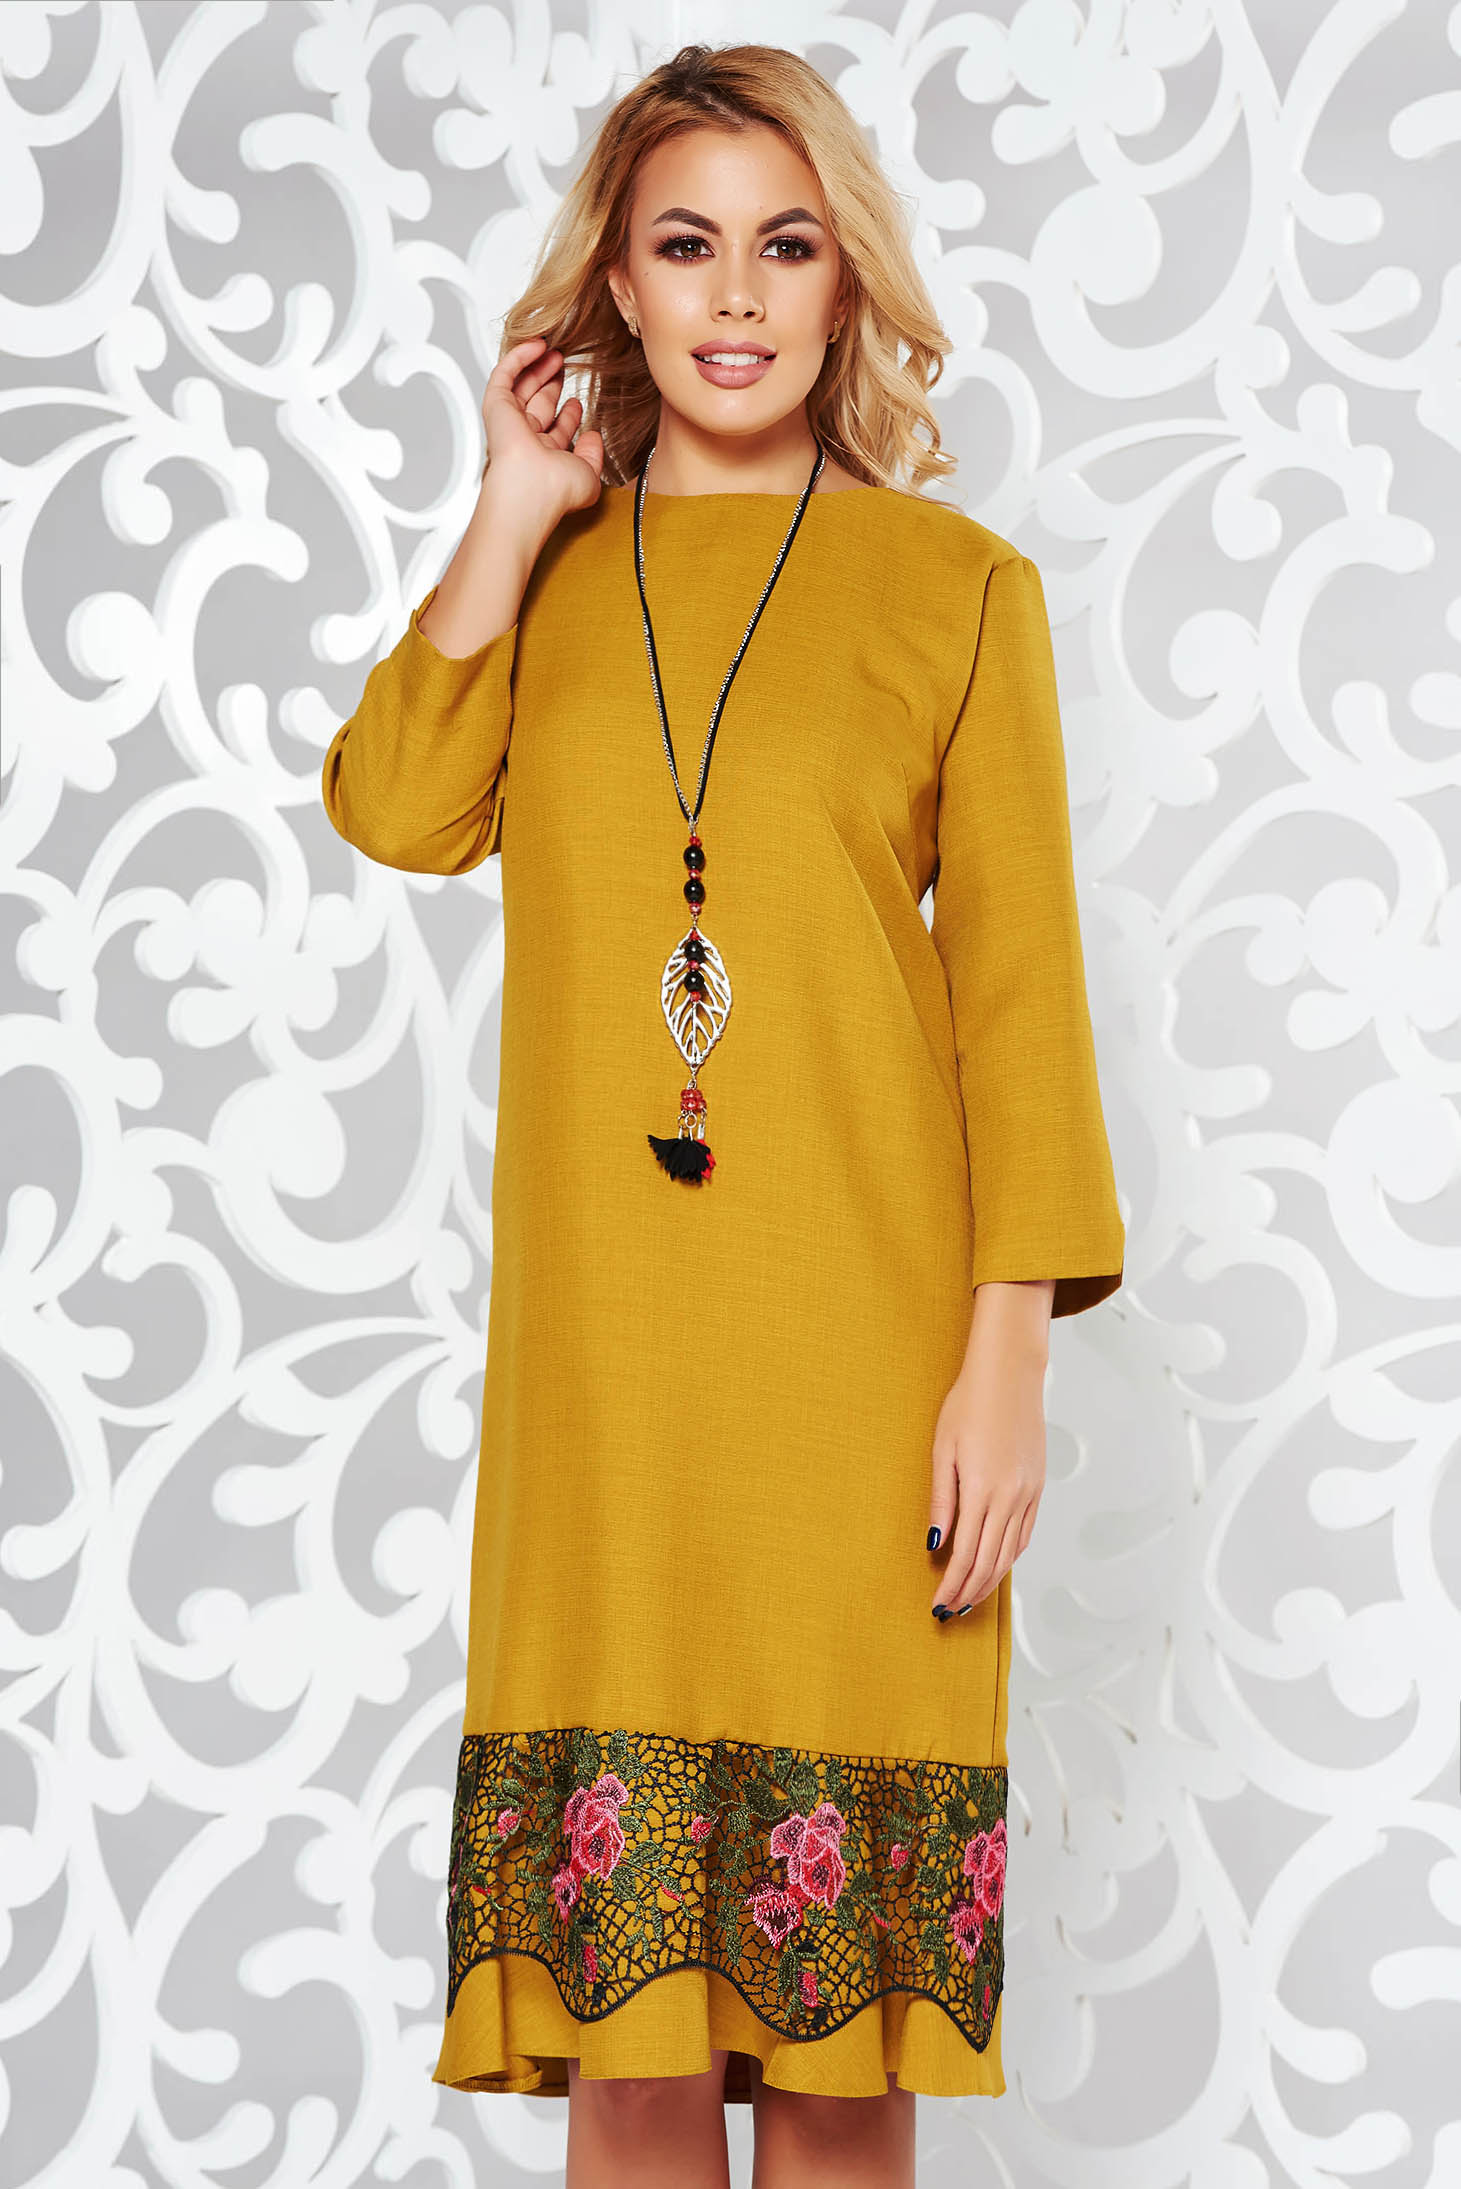 Mustard elegant flared dress slightly elastic fabric with lace details accessorized with chain